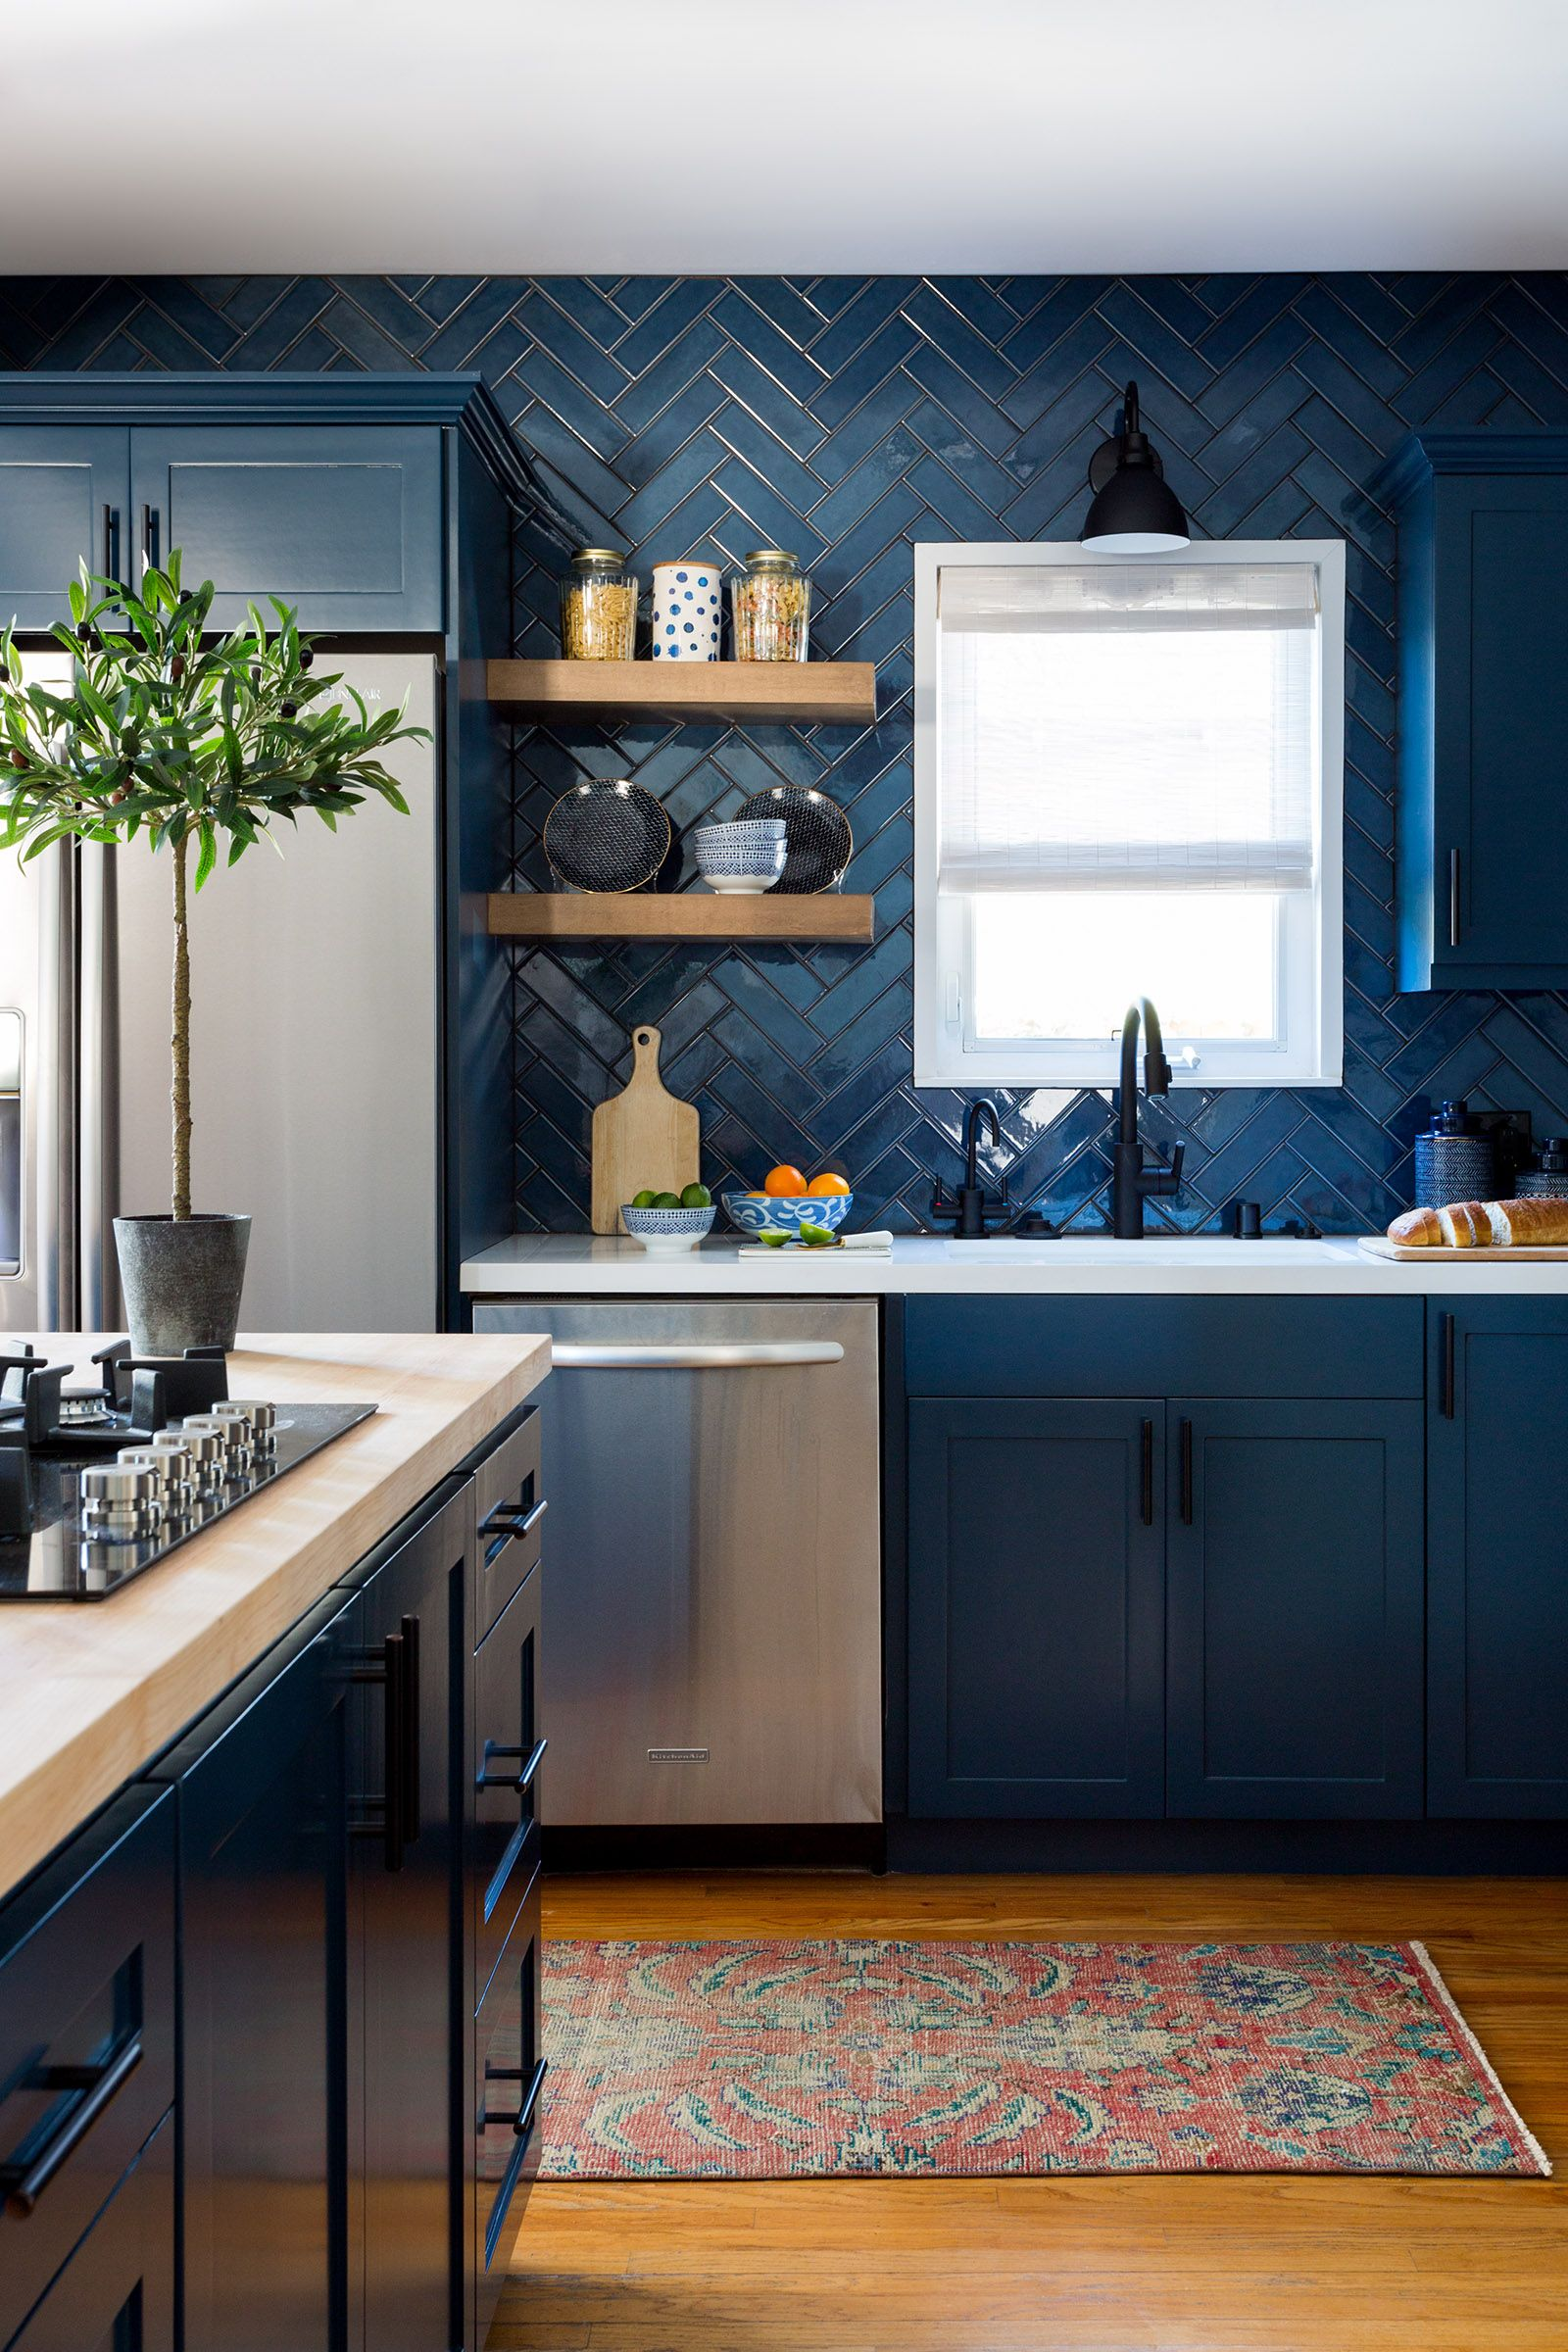 Dark Blue Kitchen Cabinets With Blue Tile Backsplash Jenn Feldman